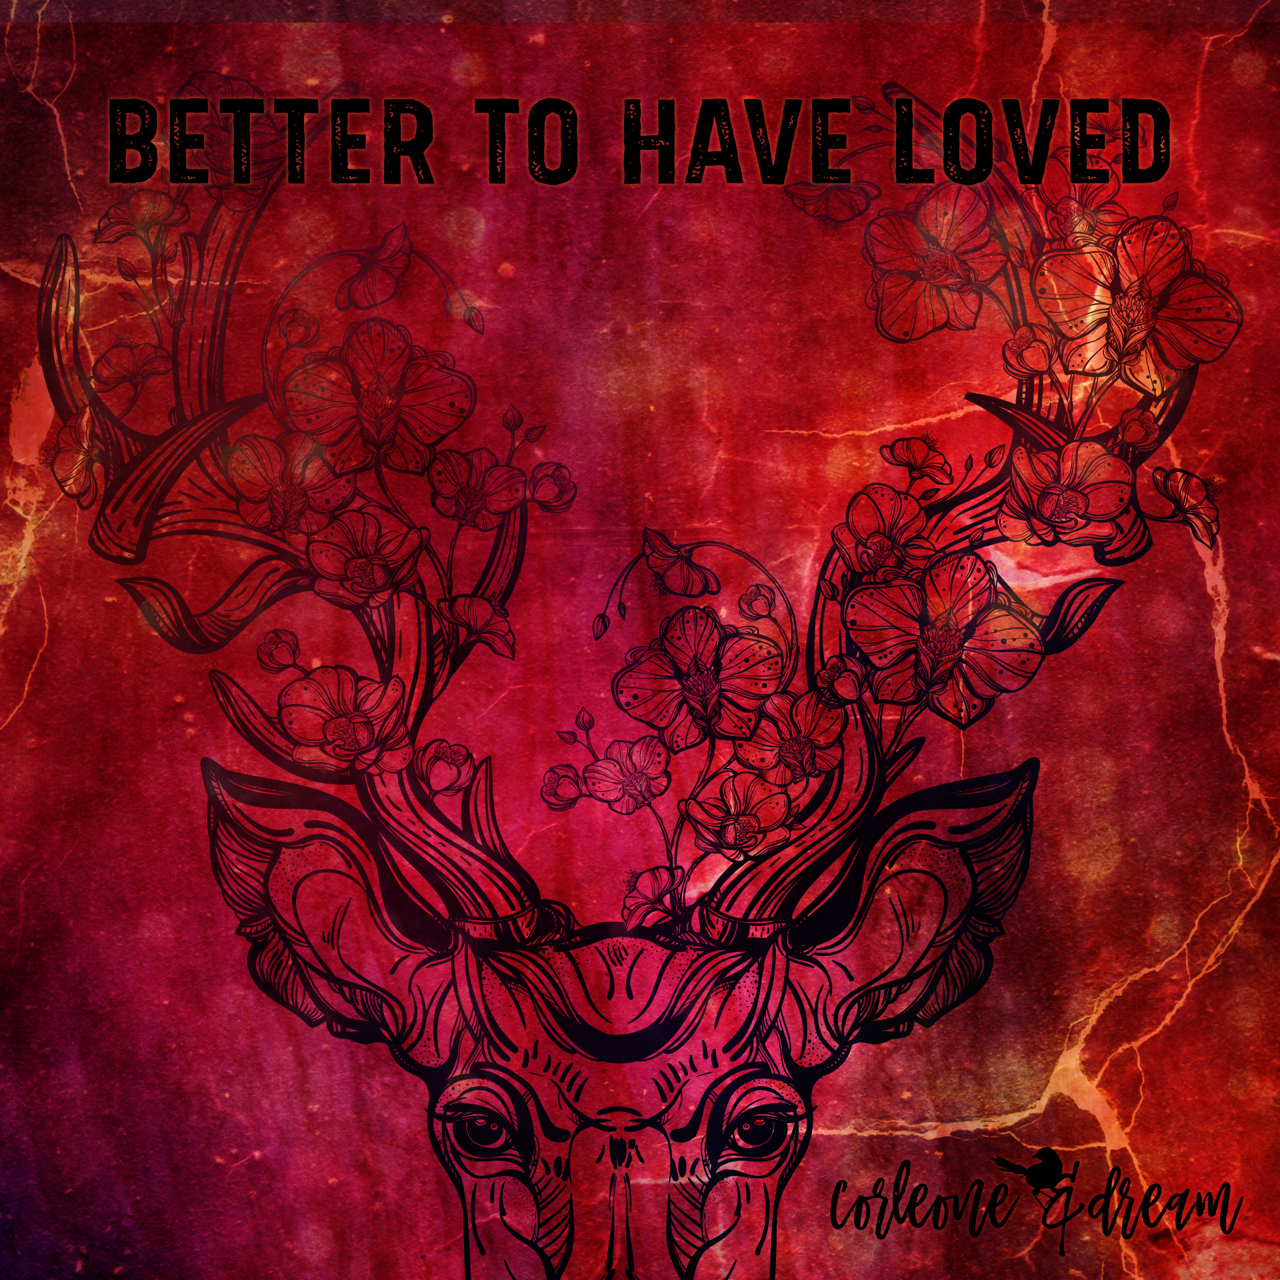 Corleone & Dream - Better To Have Loved - BIBLIOTEKA008 - TWO TRACK SINGLE